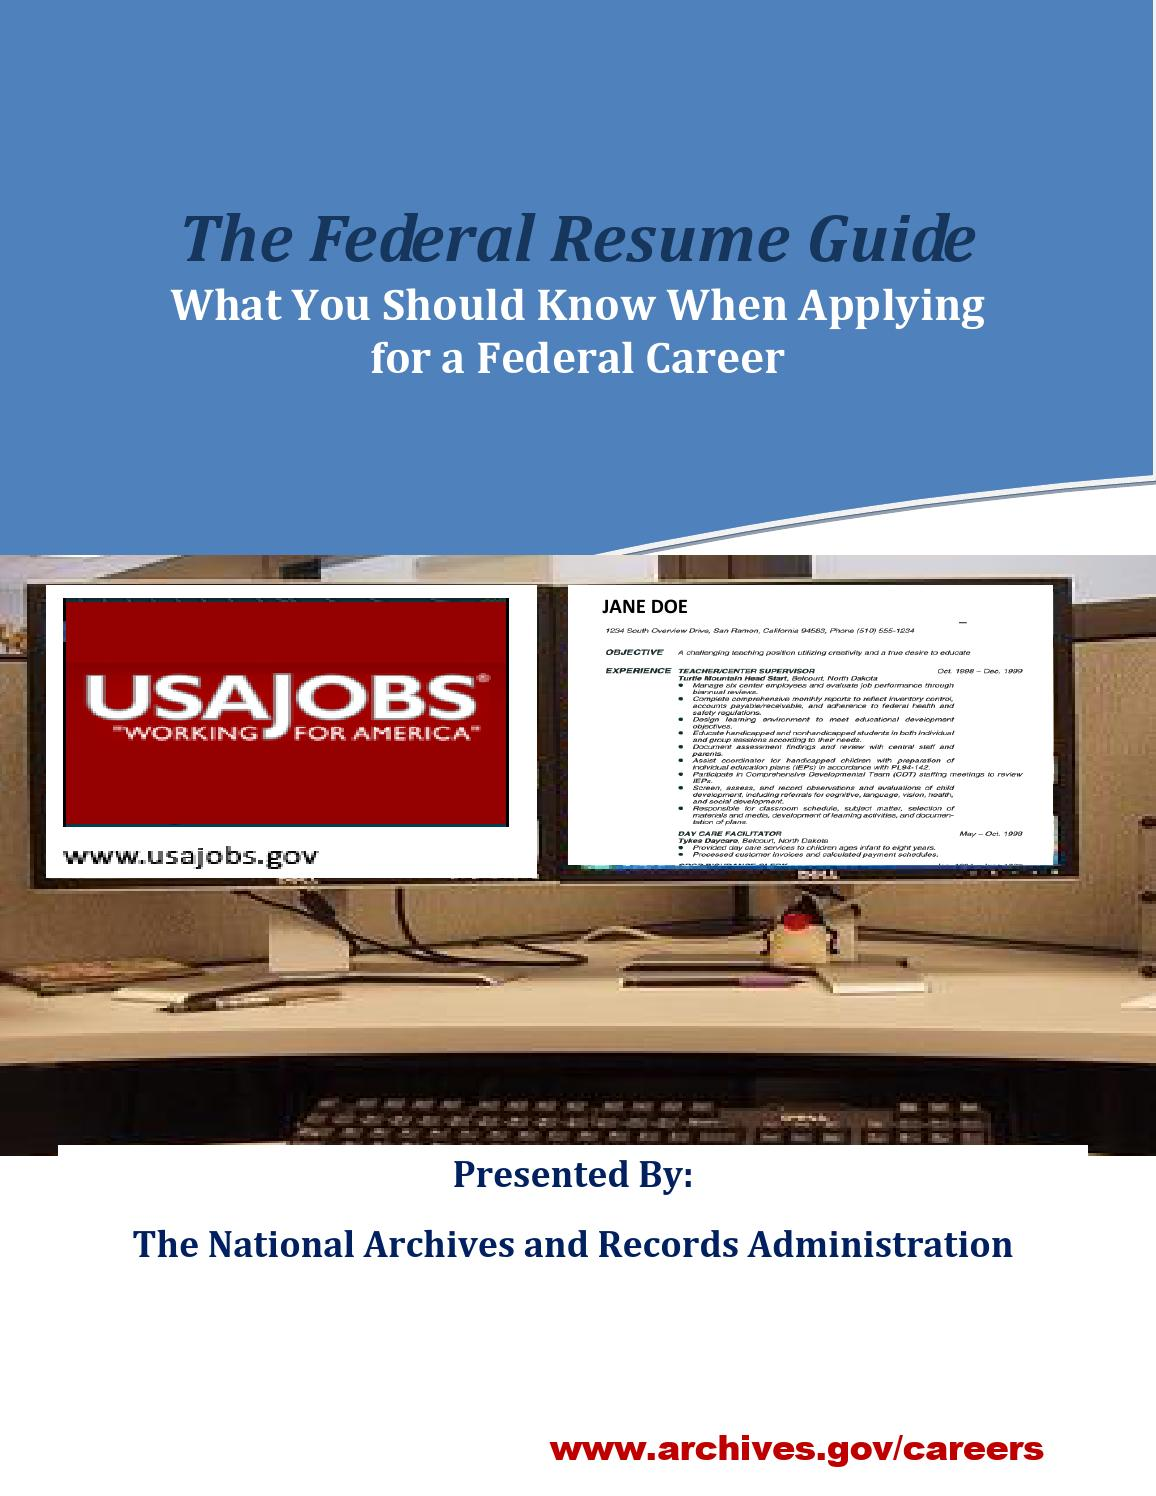 Federal resume guide by Meredith College Academic